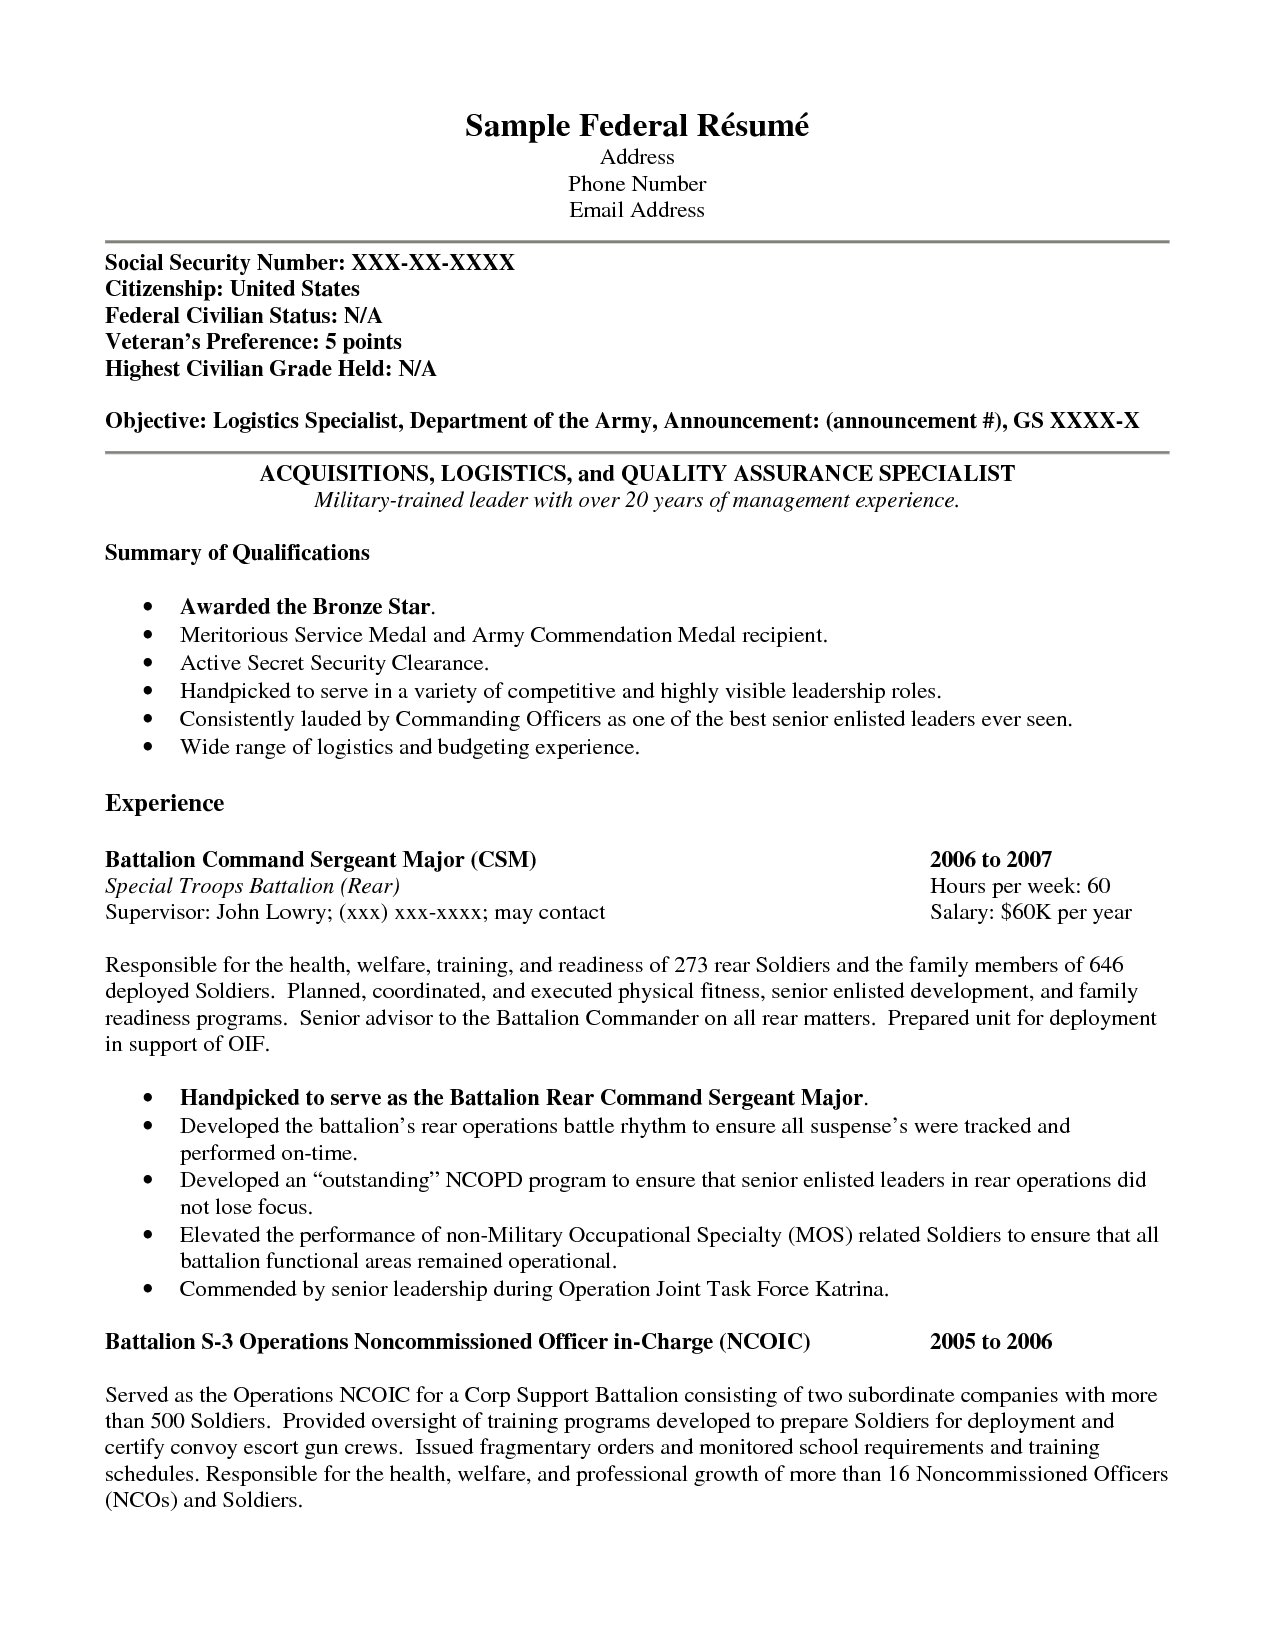 Free Military Resume Builder Templates And Service For Veterans Veteran  Template How Write Logistics Specialist Army  Military Resume Builder